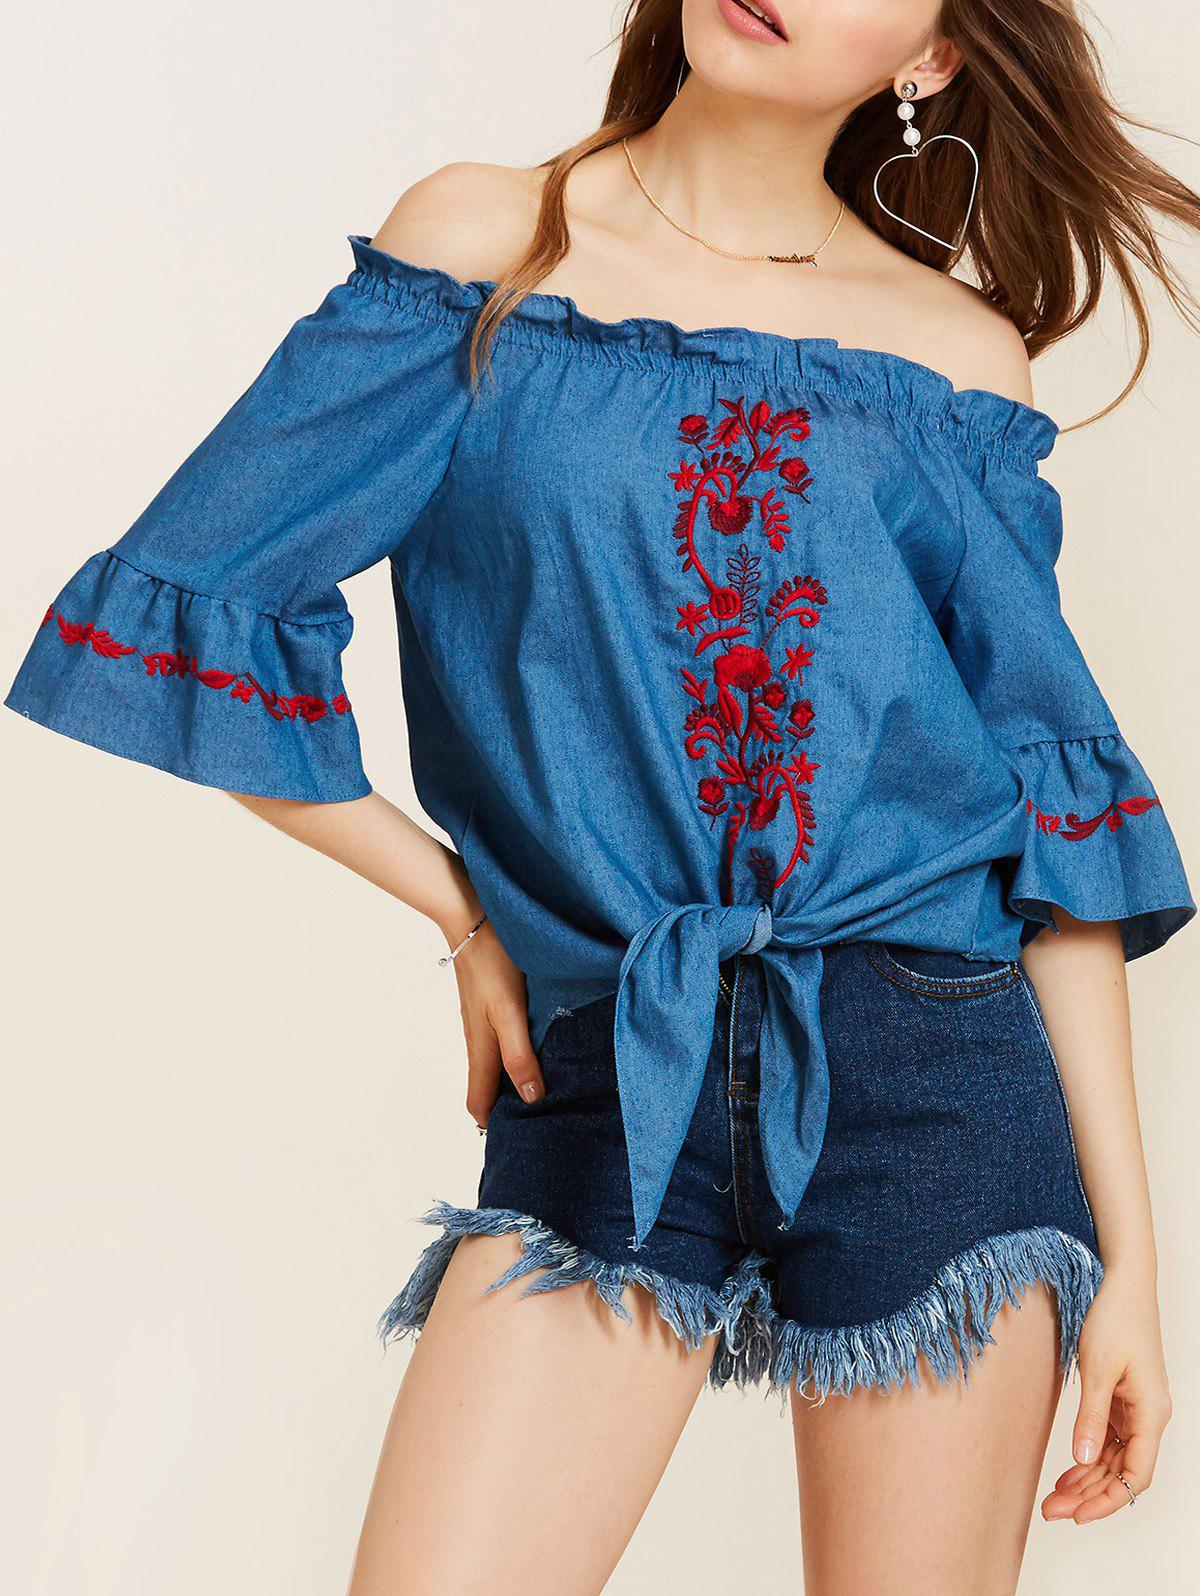 Off The Shoulder Embroidery Tie Waist BlouseWOMEN<br><br>Size: S; Color: BLUE; Occasion: Casual; Style: Casual; Material: Polyester; Shirt Length: Regular; Sleeve Length: Three Quarter; Collar: Off The Shoulder; Pattern Type: Floral; Embellishment: Embroidery; Season: Fall,Spring,Summer; Weight: 0.2500kg; Package Contents: 1 x Blouse;